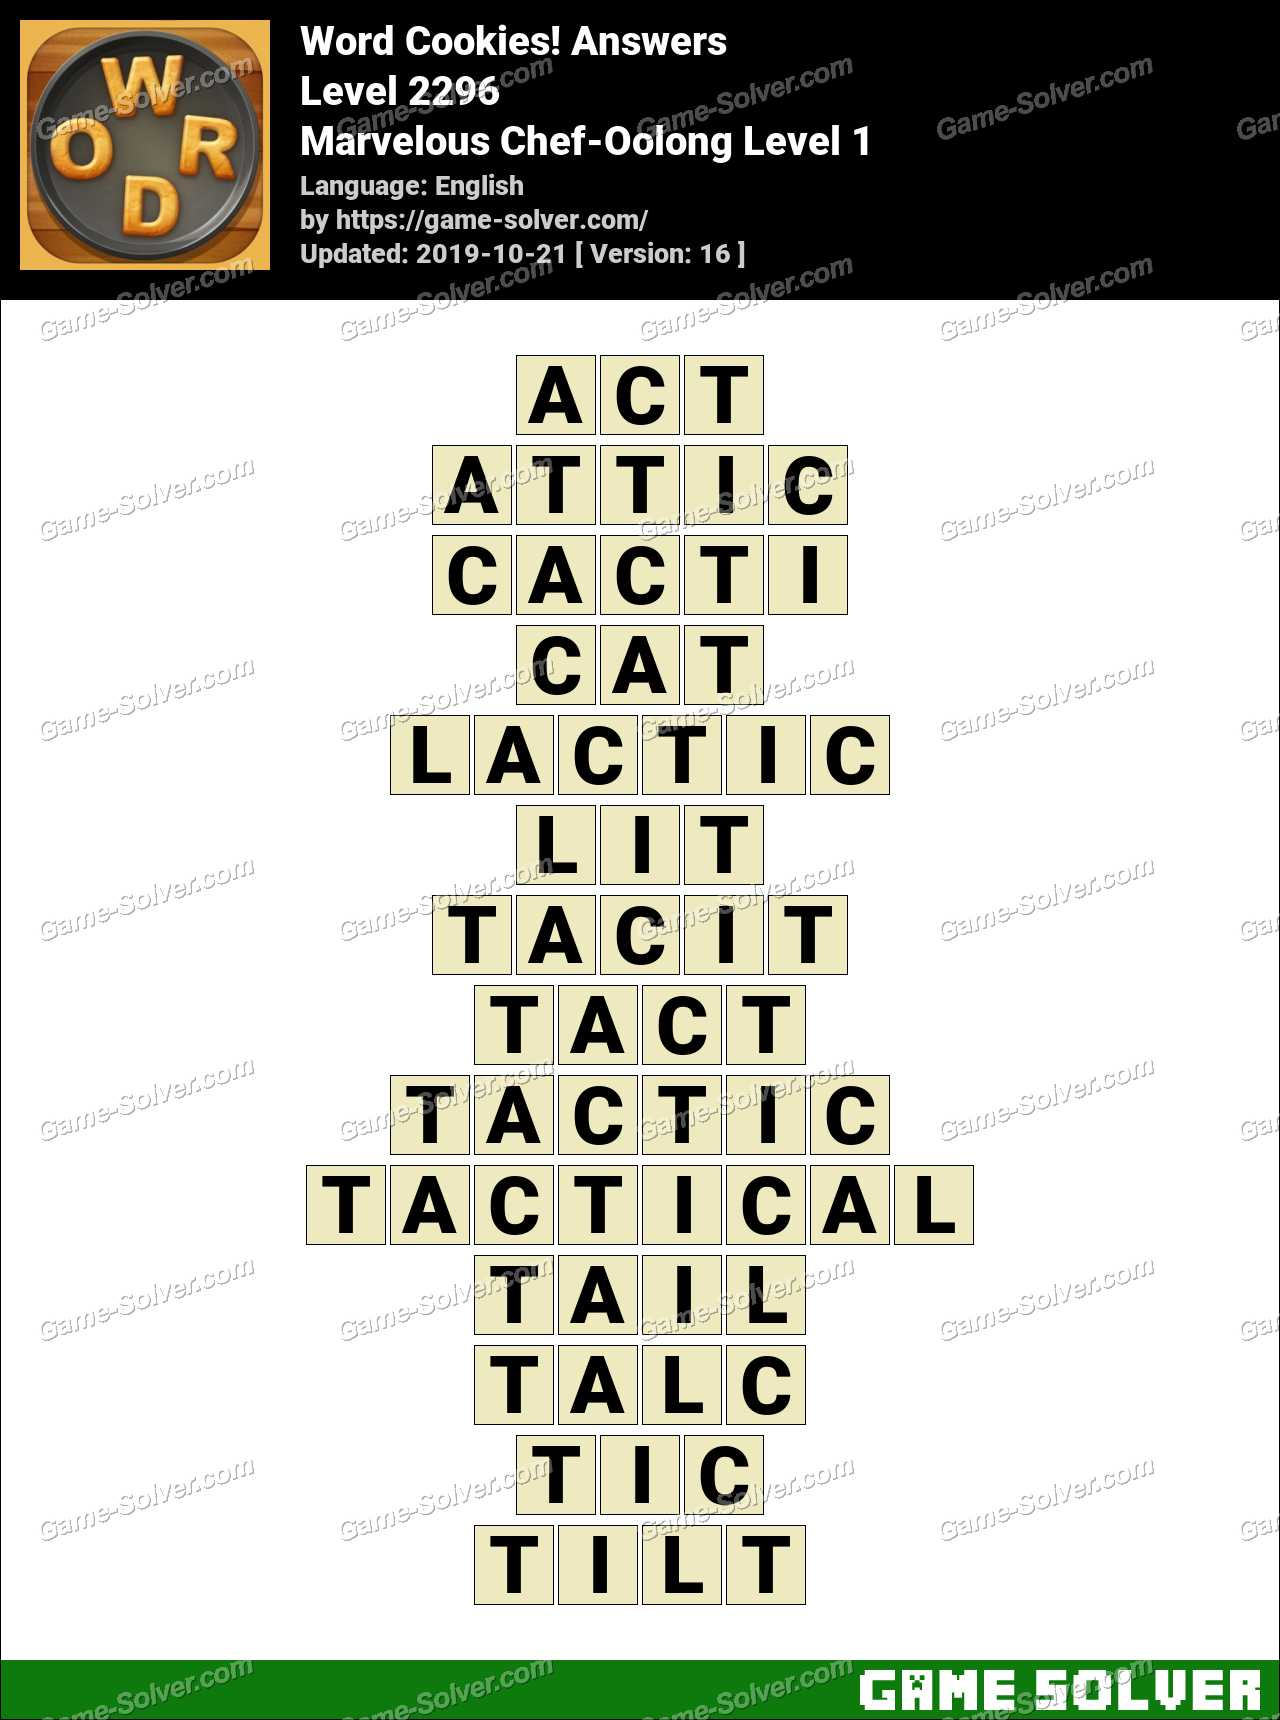 Word Cookies Marvelous Chef-Oolong Level 1 Answers